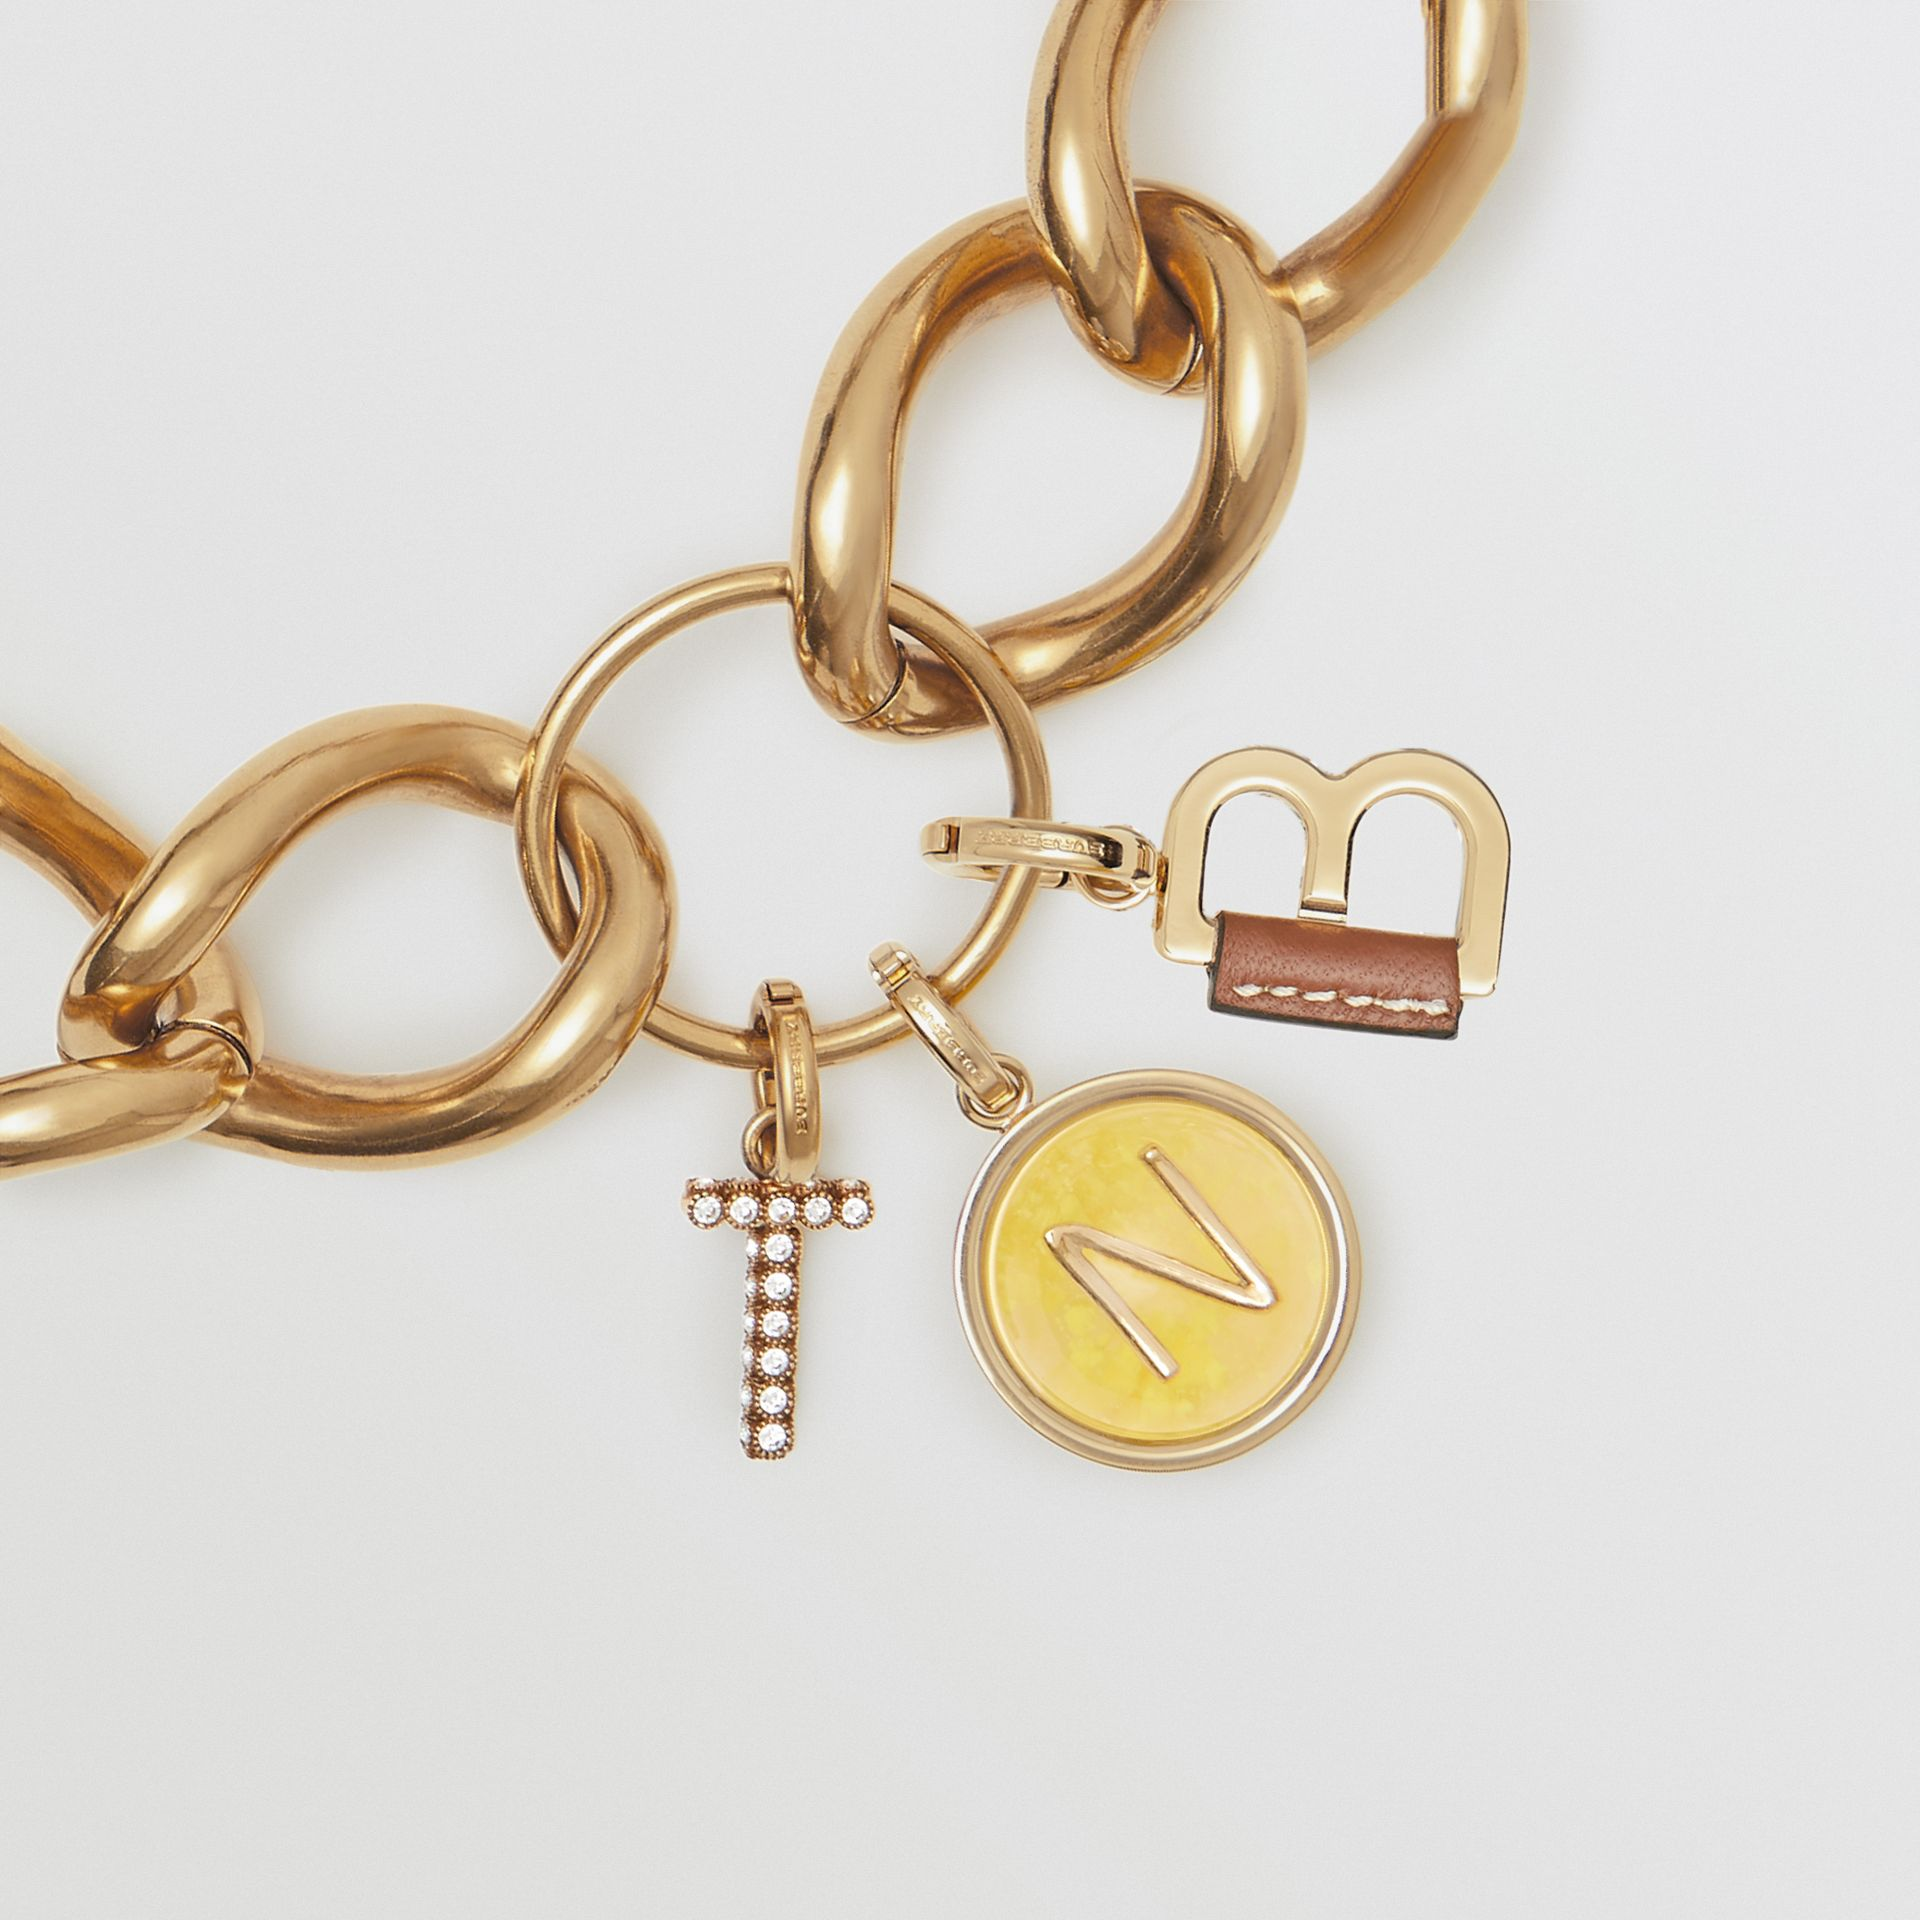 Marbled Resin 'I' Alphabet Charm in Gold/mimosa - Women | Burberry United Kingdom - gallery image 2